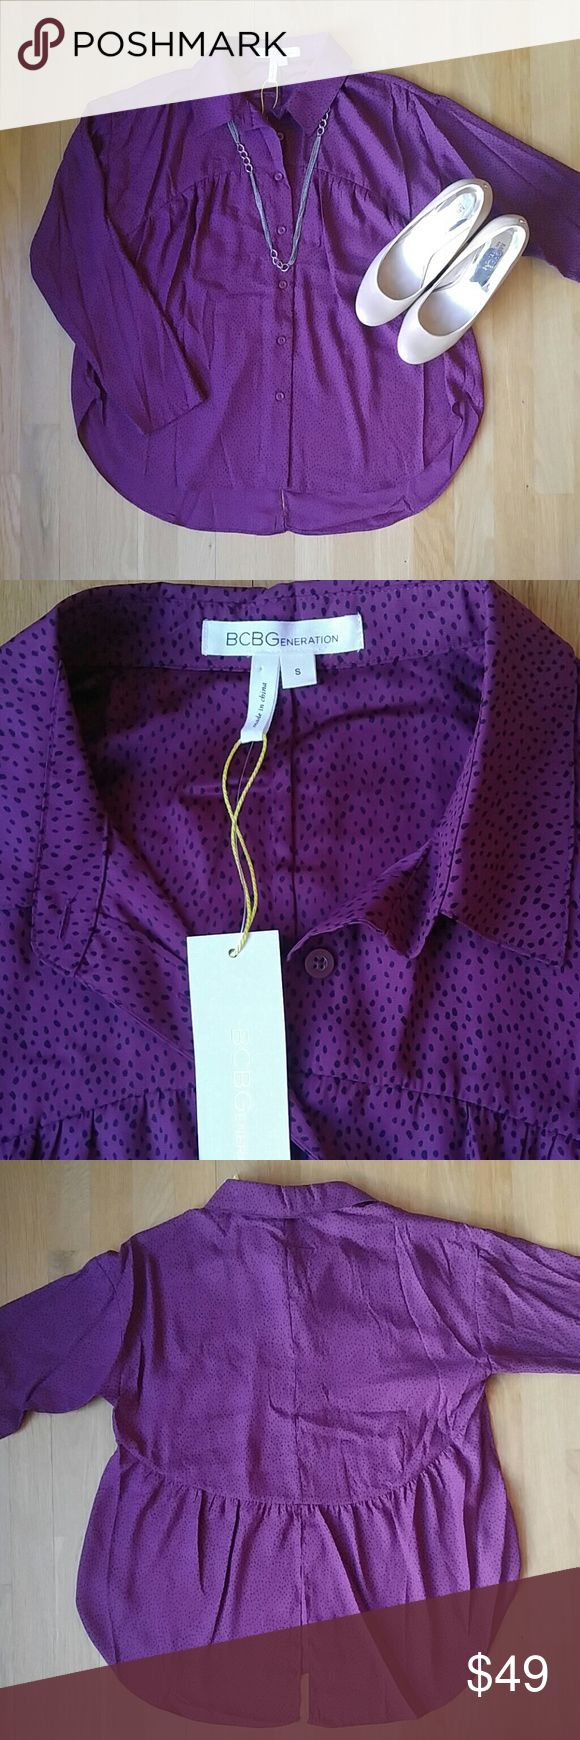 BCBGeneration Blouse NWT!!!! A beautiful purple and black speckled blouse. This top goes great with leggings or skinny jeans since it's flowy and blousey!! BCBGeneration Tops Blouses